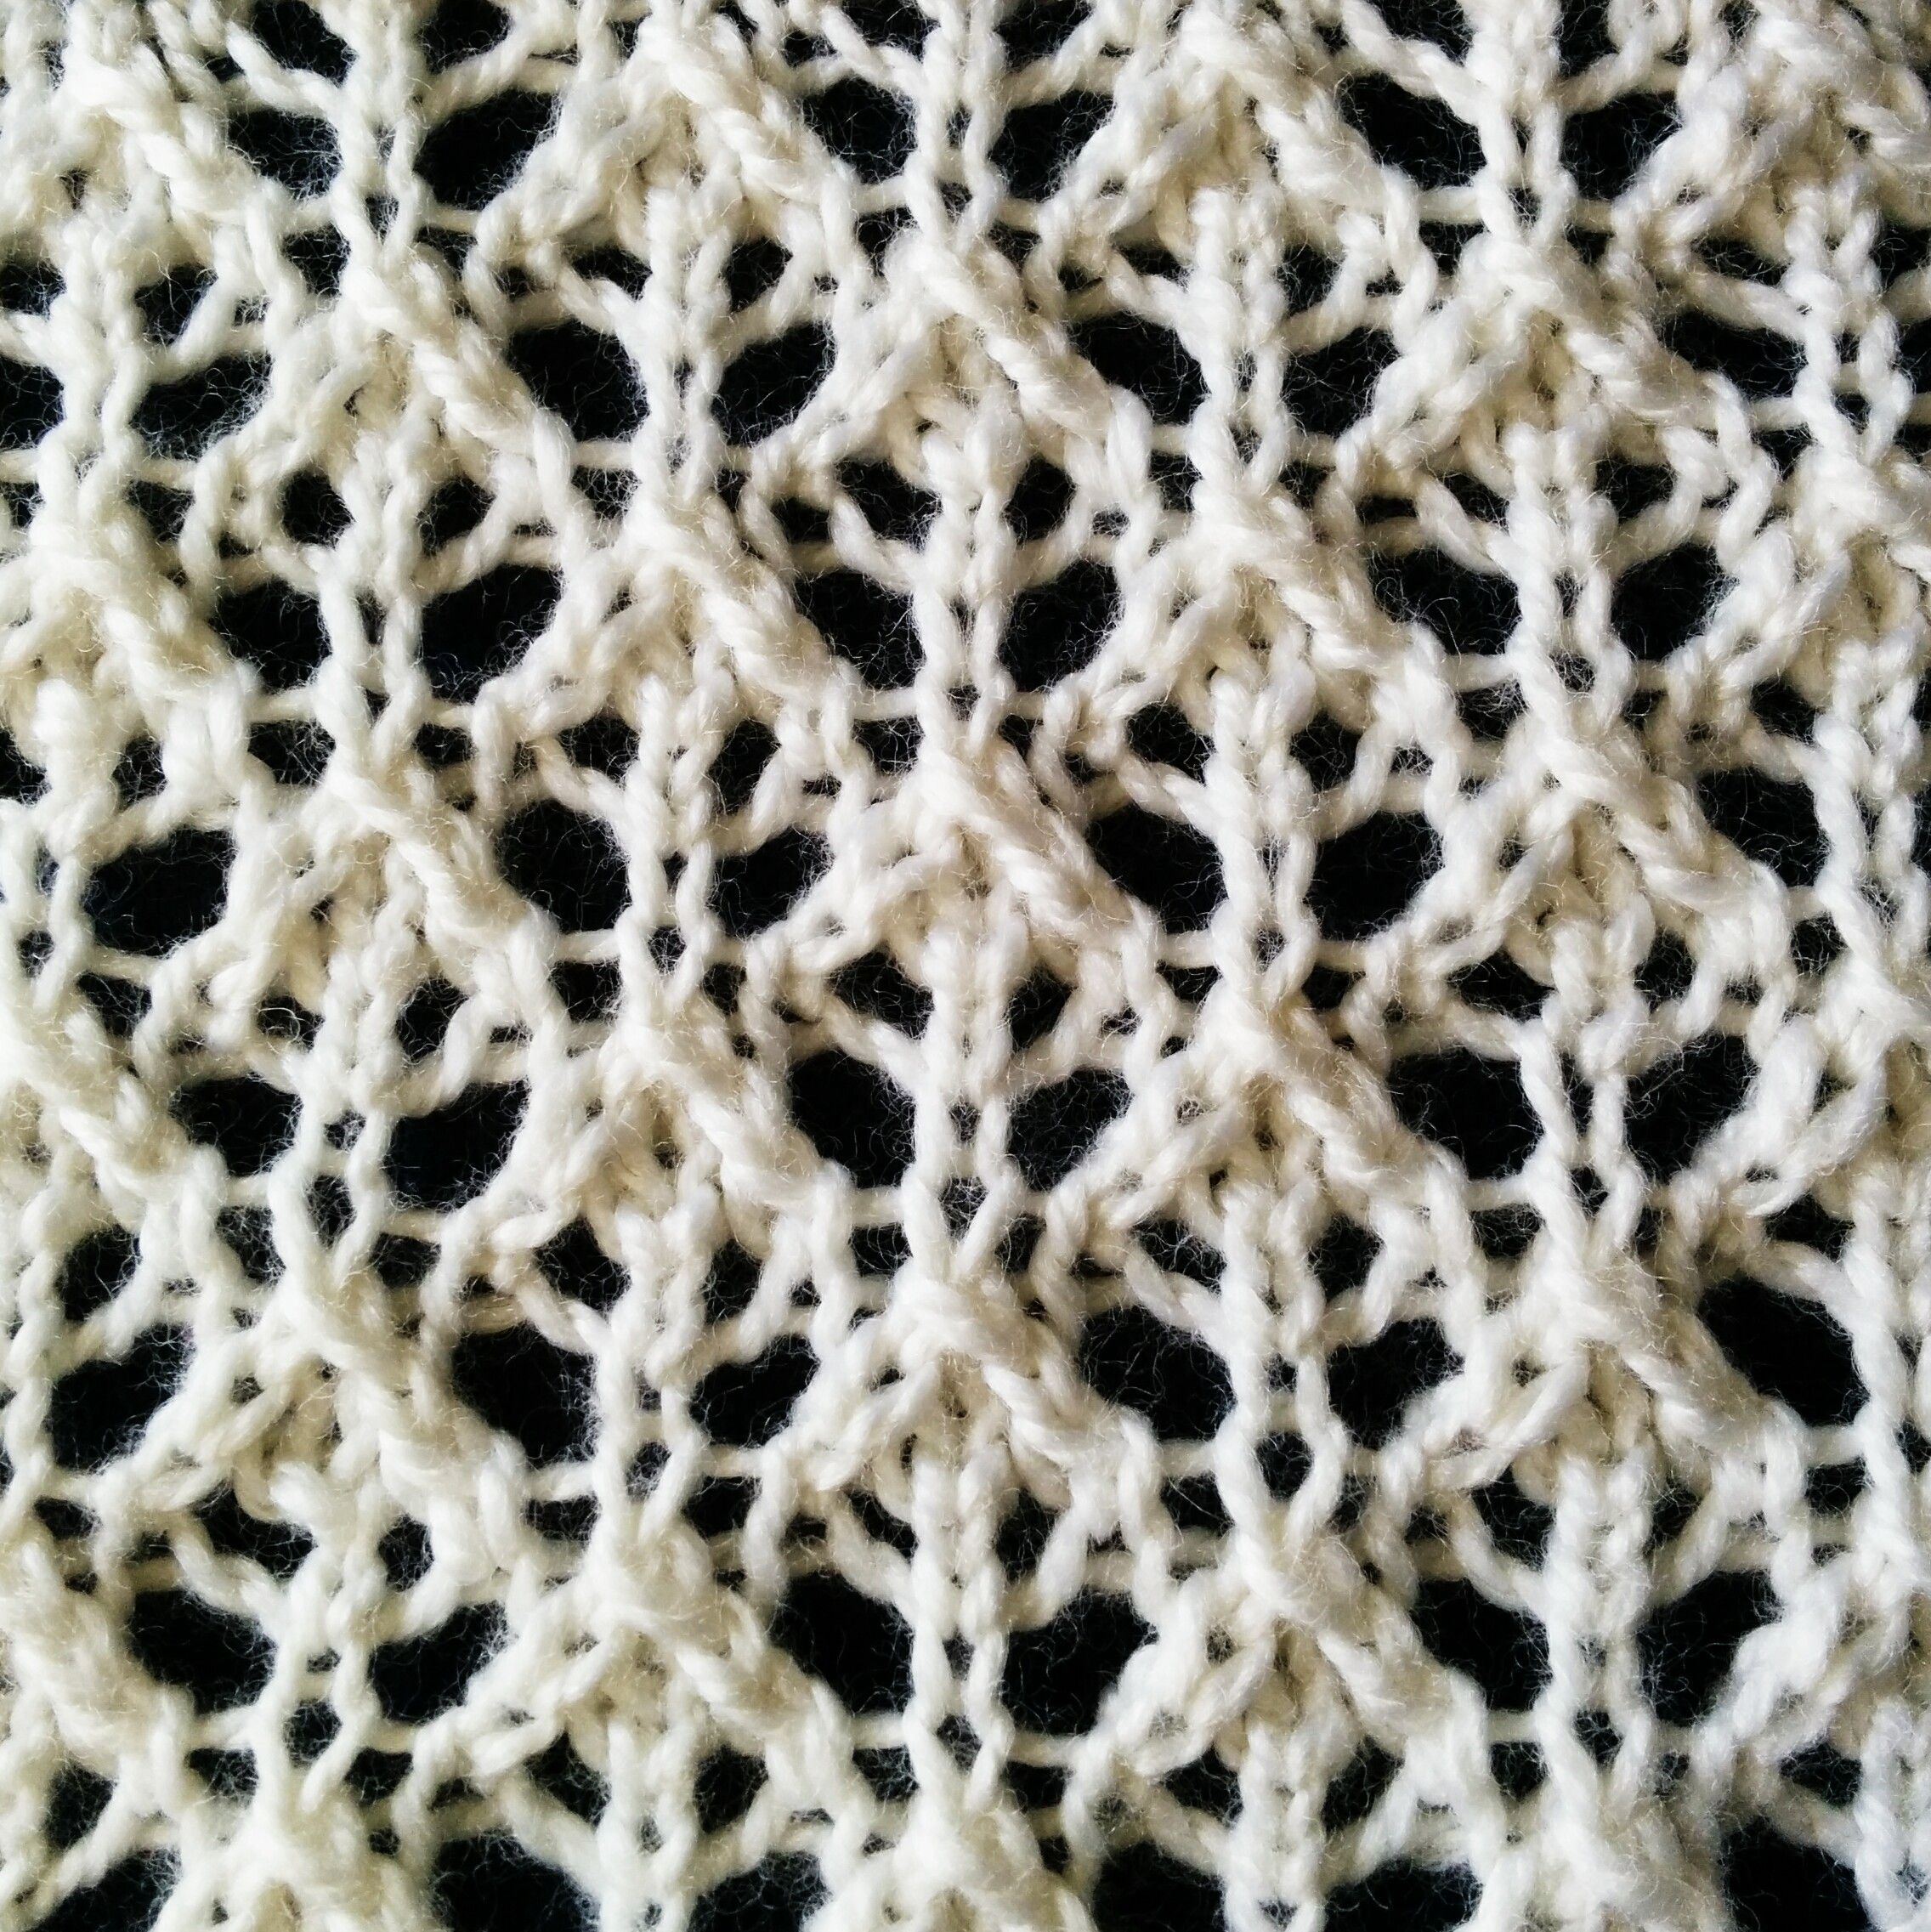 The Buds And Lattice Lace Stitch That Looks Very Intricate And